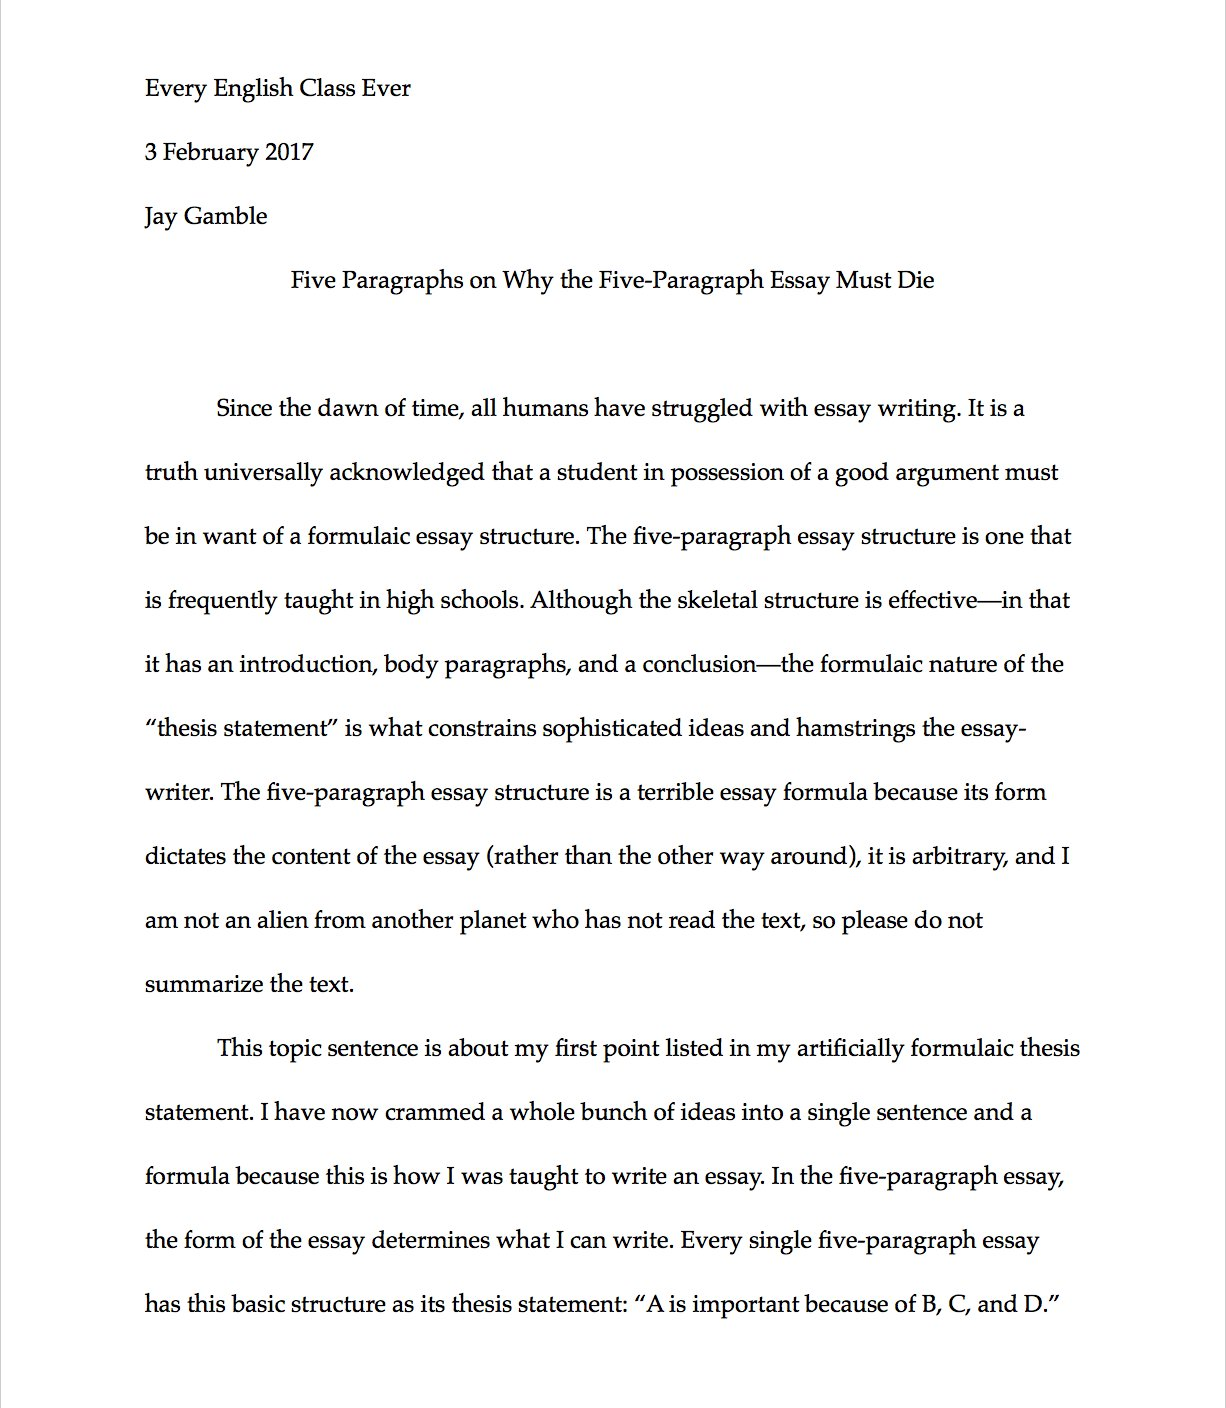 jay gamble on why the five paragraph essay must die in jay gamble on why the five paragraph essay must die in five paragraphs thanks to likelyjanlukas for the idea t co svhn2ho8zl